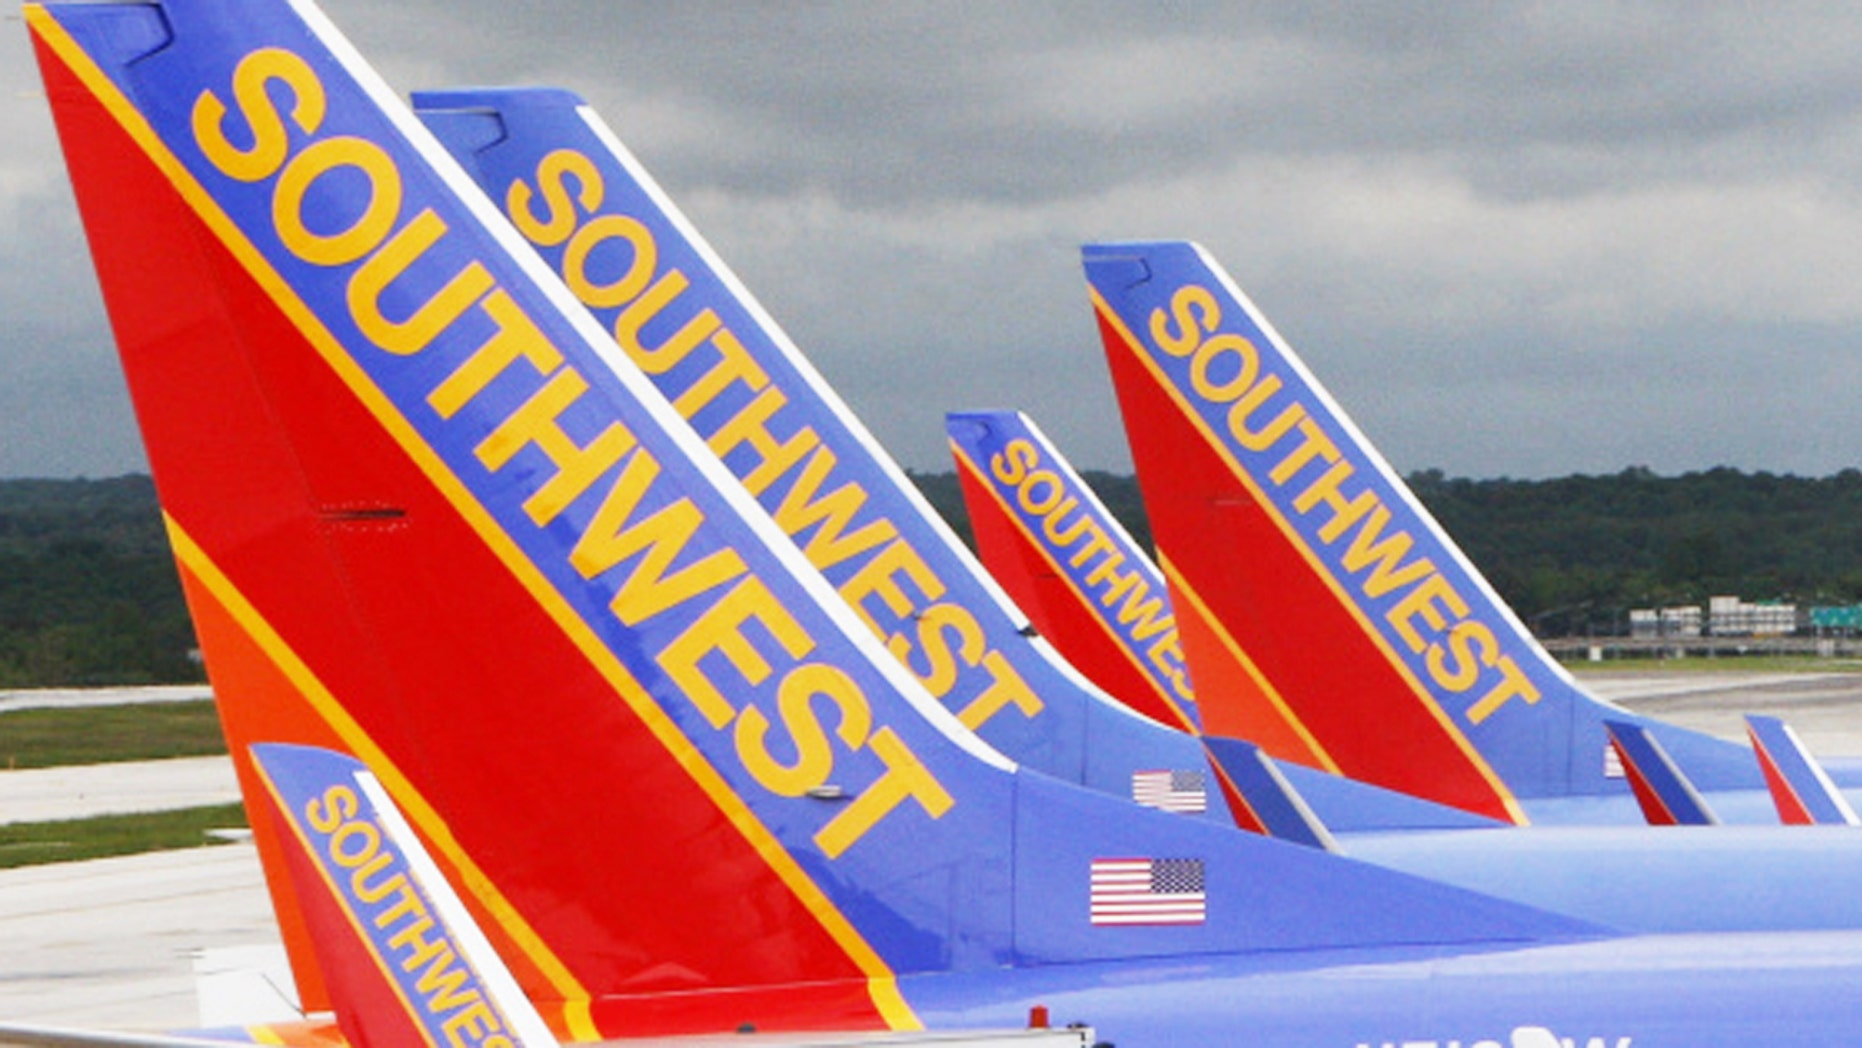 Dallas Love Field is a major Southwest hub.